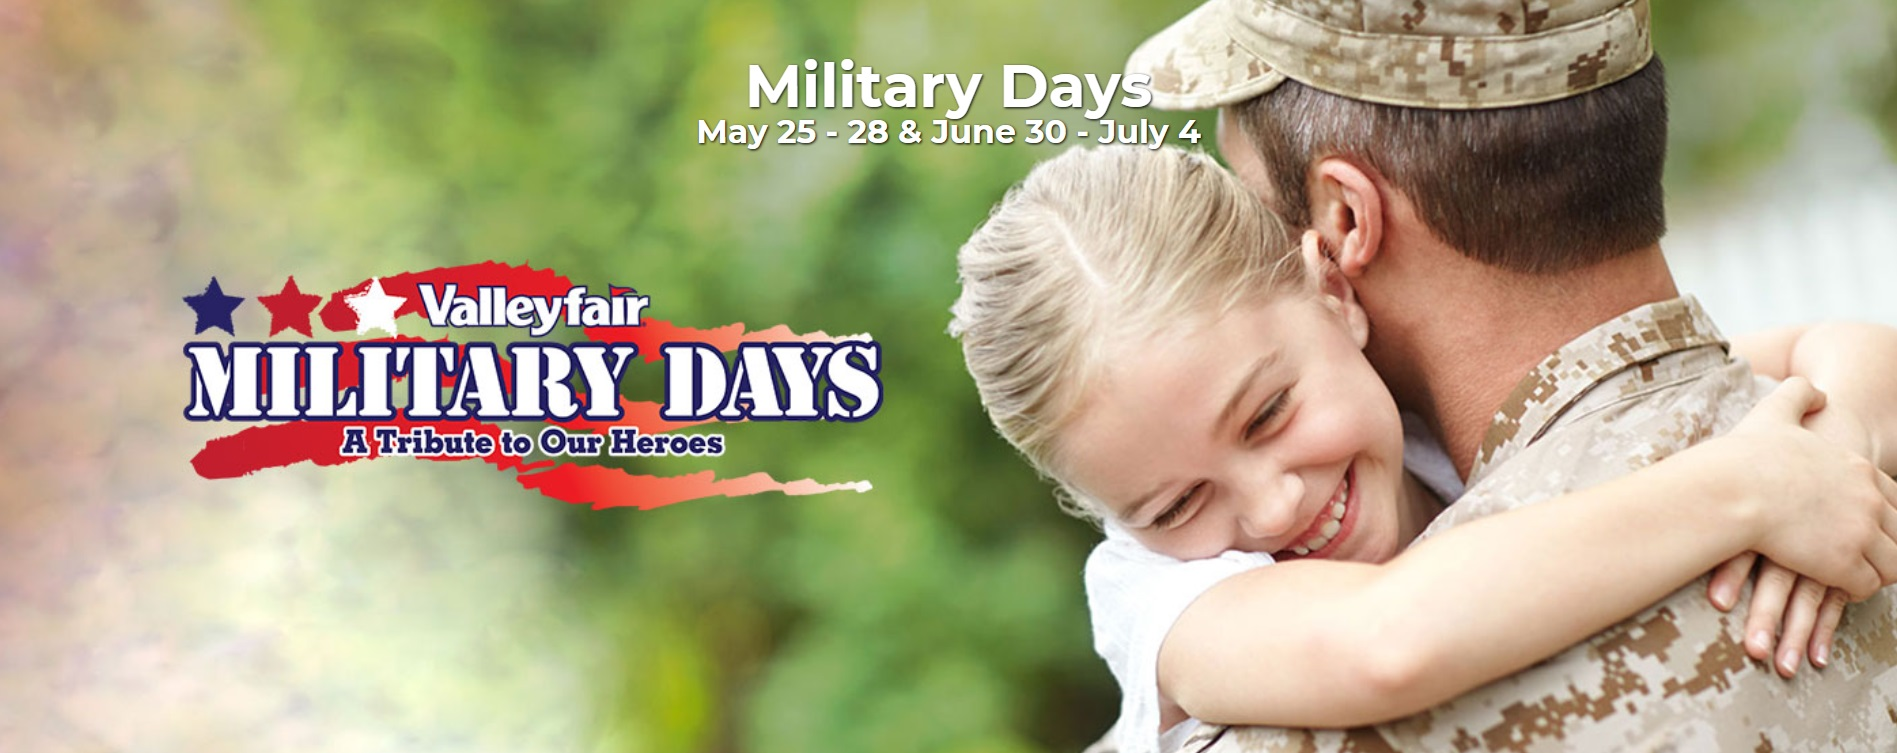 Valleyfair Military Days – May